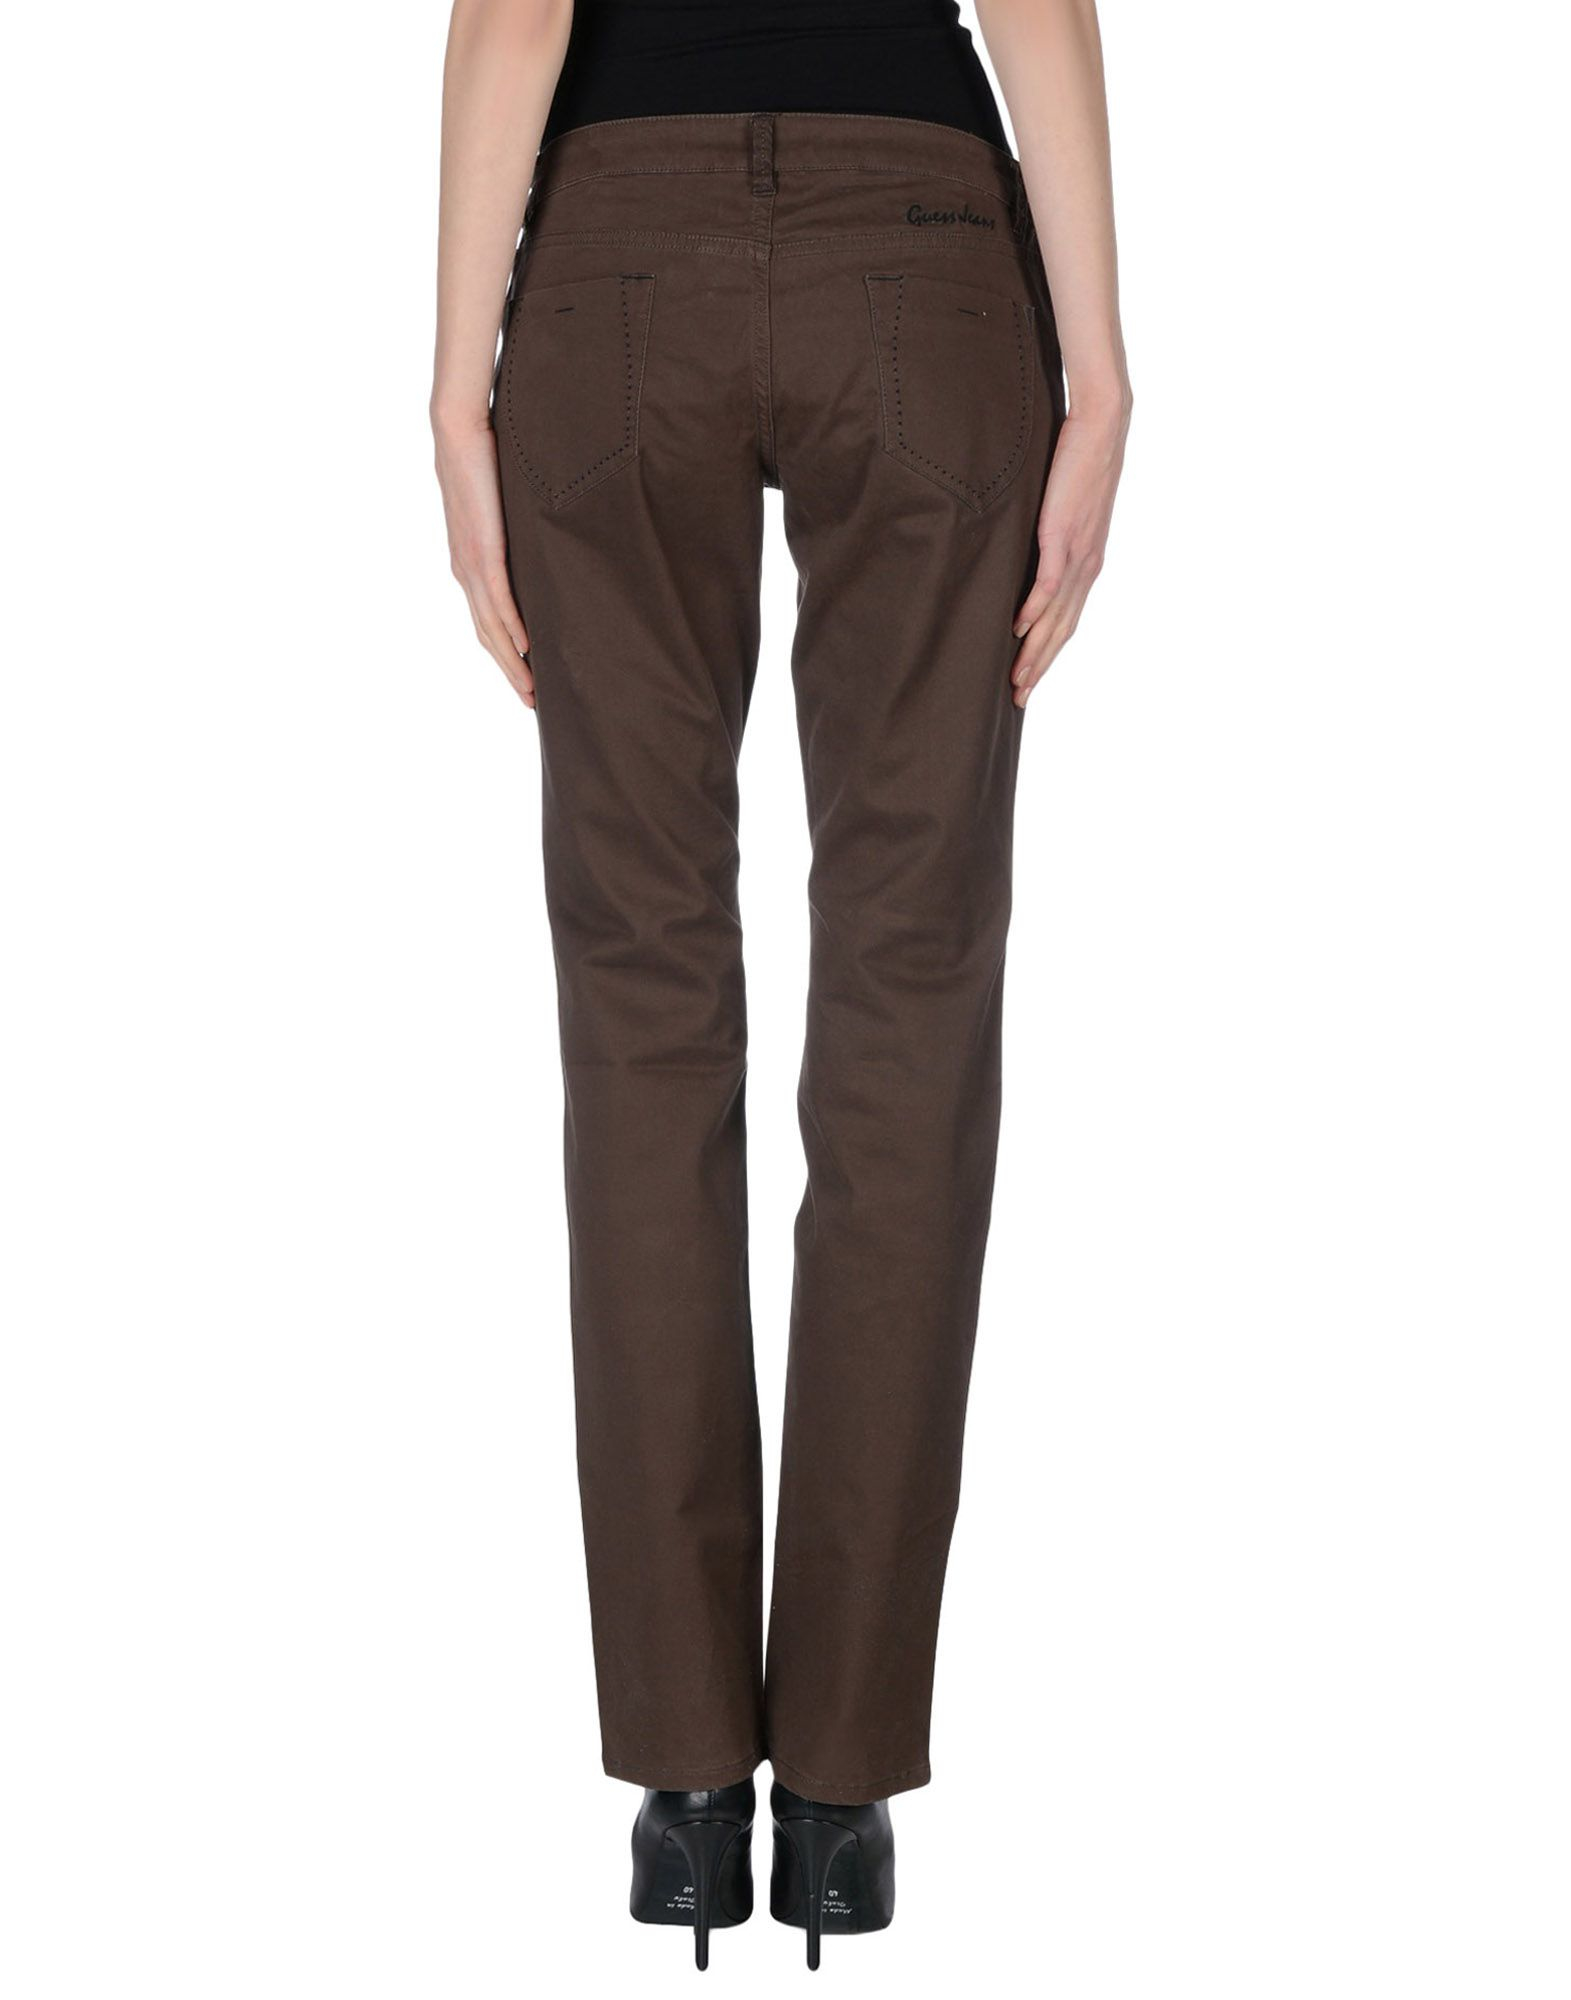 Excellent St John Women39s Dark Brown Leather Pants And Brown Suede Pants  EBTH